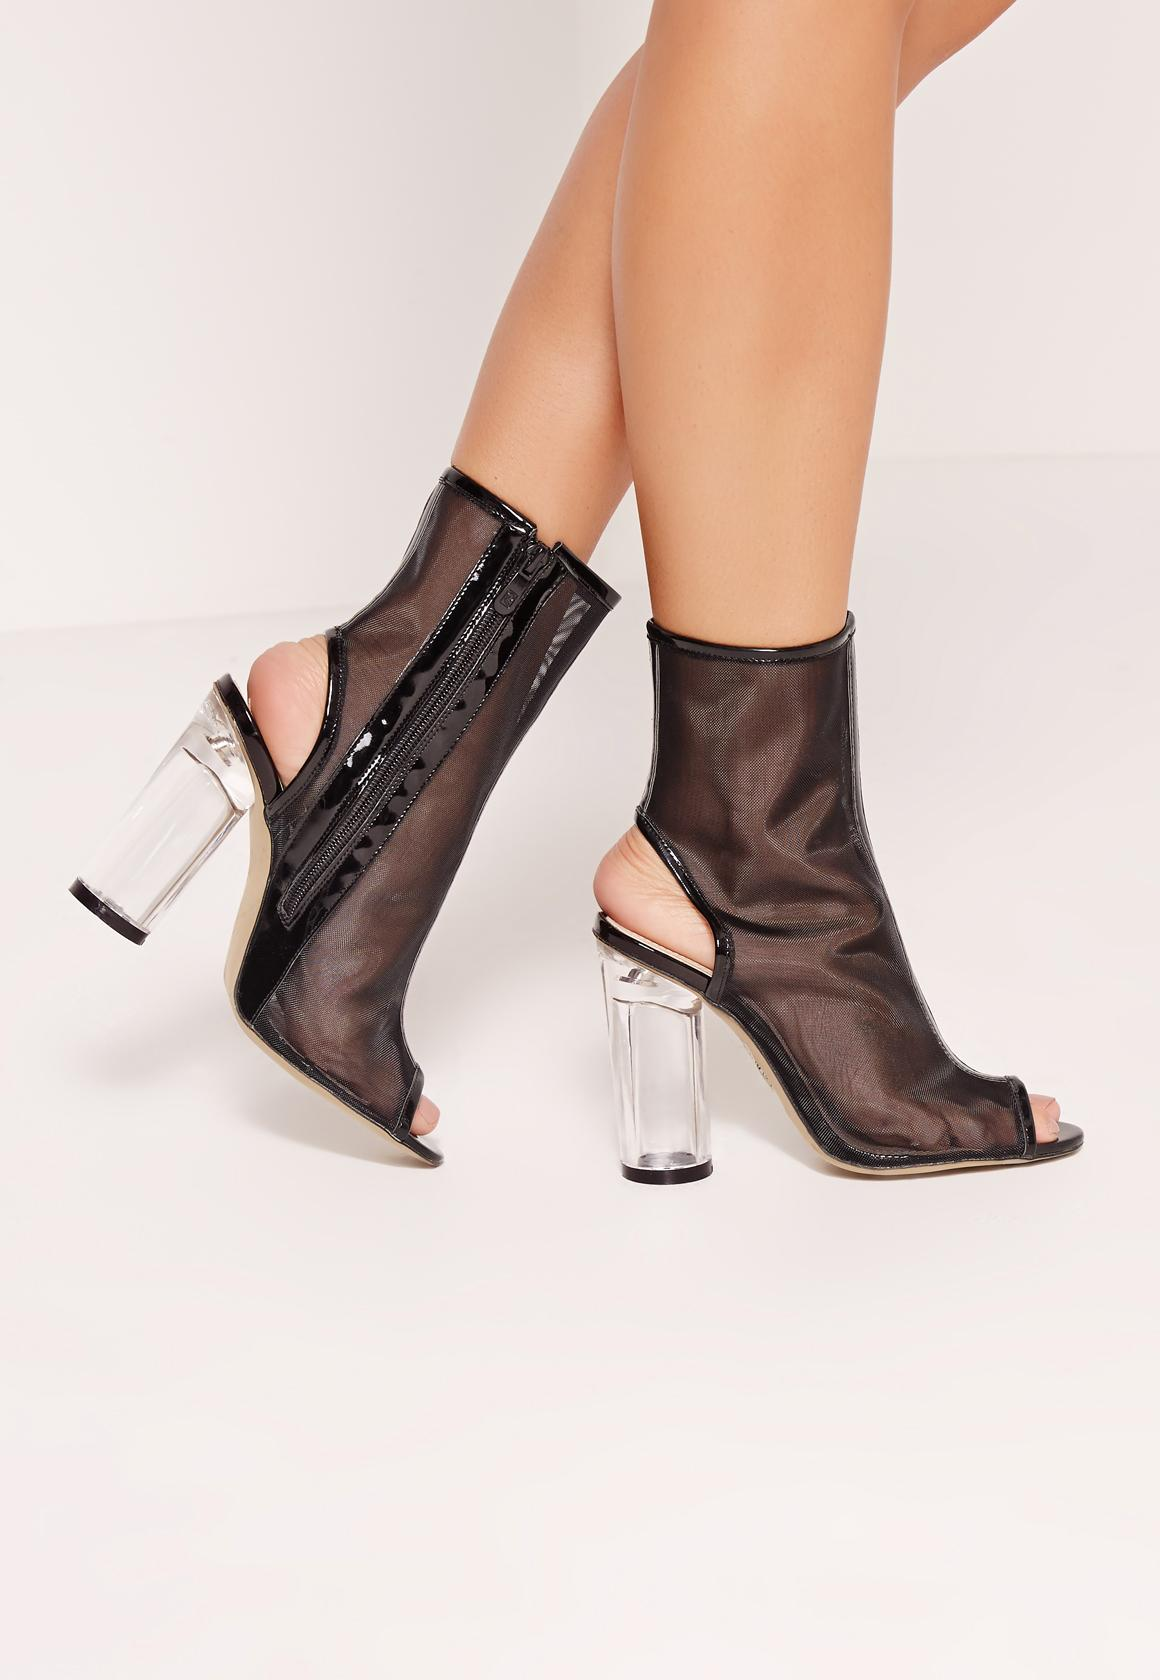 Black Peep Toe Transparent Block Heel Ankle Boots